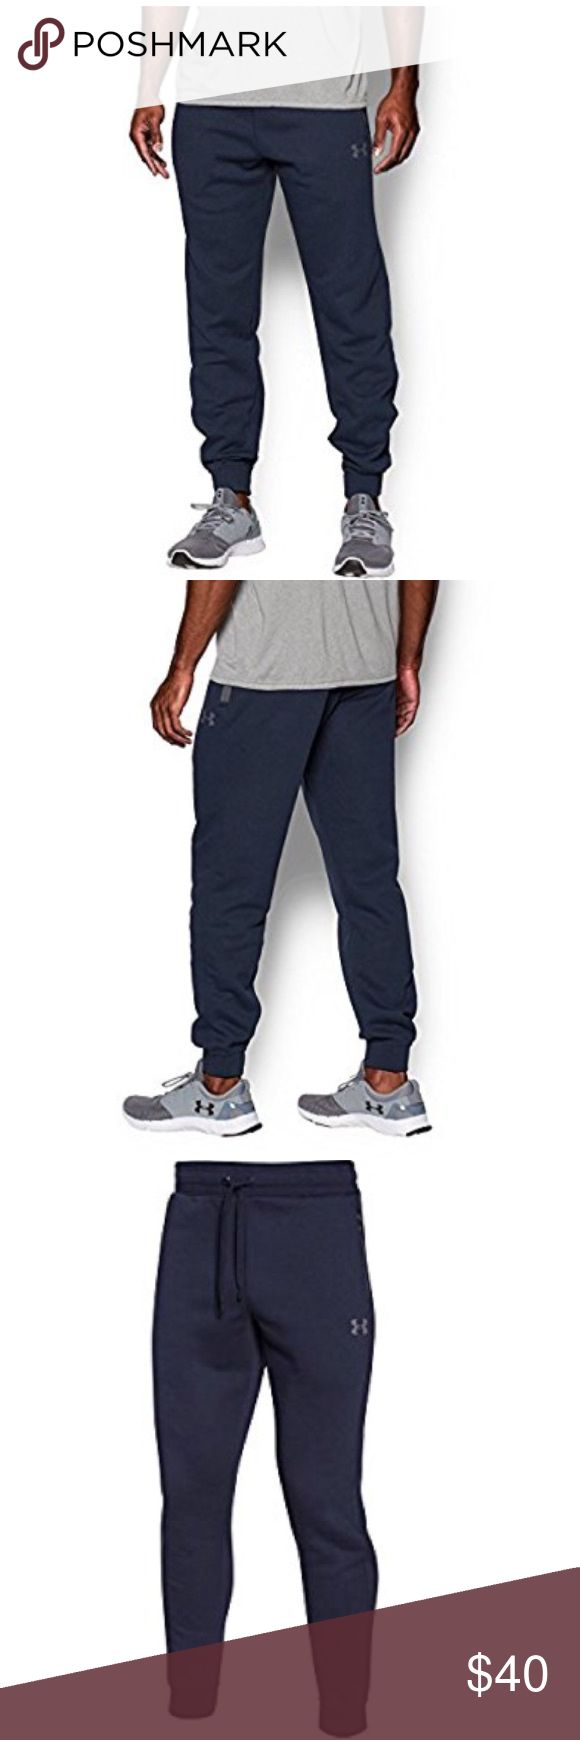 """Under Armour Men's UA SoHo Fleece Jogger Pants Whether you're looking for casual wear or a pair of pants to sweat in, these fleece joggers are for you! Midweight, 280g durable cotton-blend fleece. Soft, brushed inside traps warmth. Ribbed waistband with external drawcord. Secure hand pockets. Ribbed cuffs. Tapered leg. Inseam: 31"""". 9.9 oz. Cotton/Polyester. Imported. Under Armour Pants Sweatpants & Joggers"""